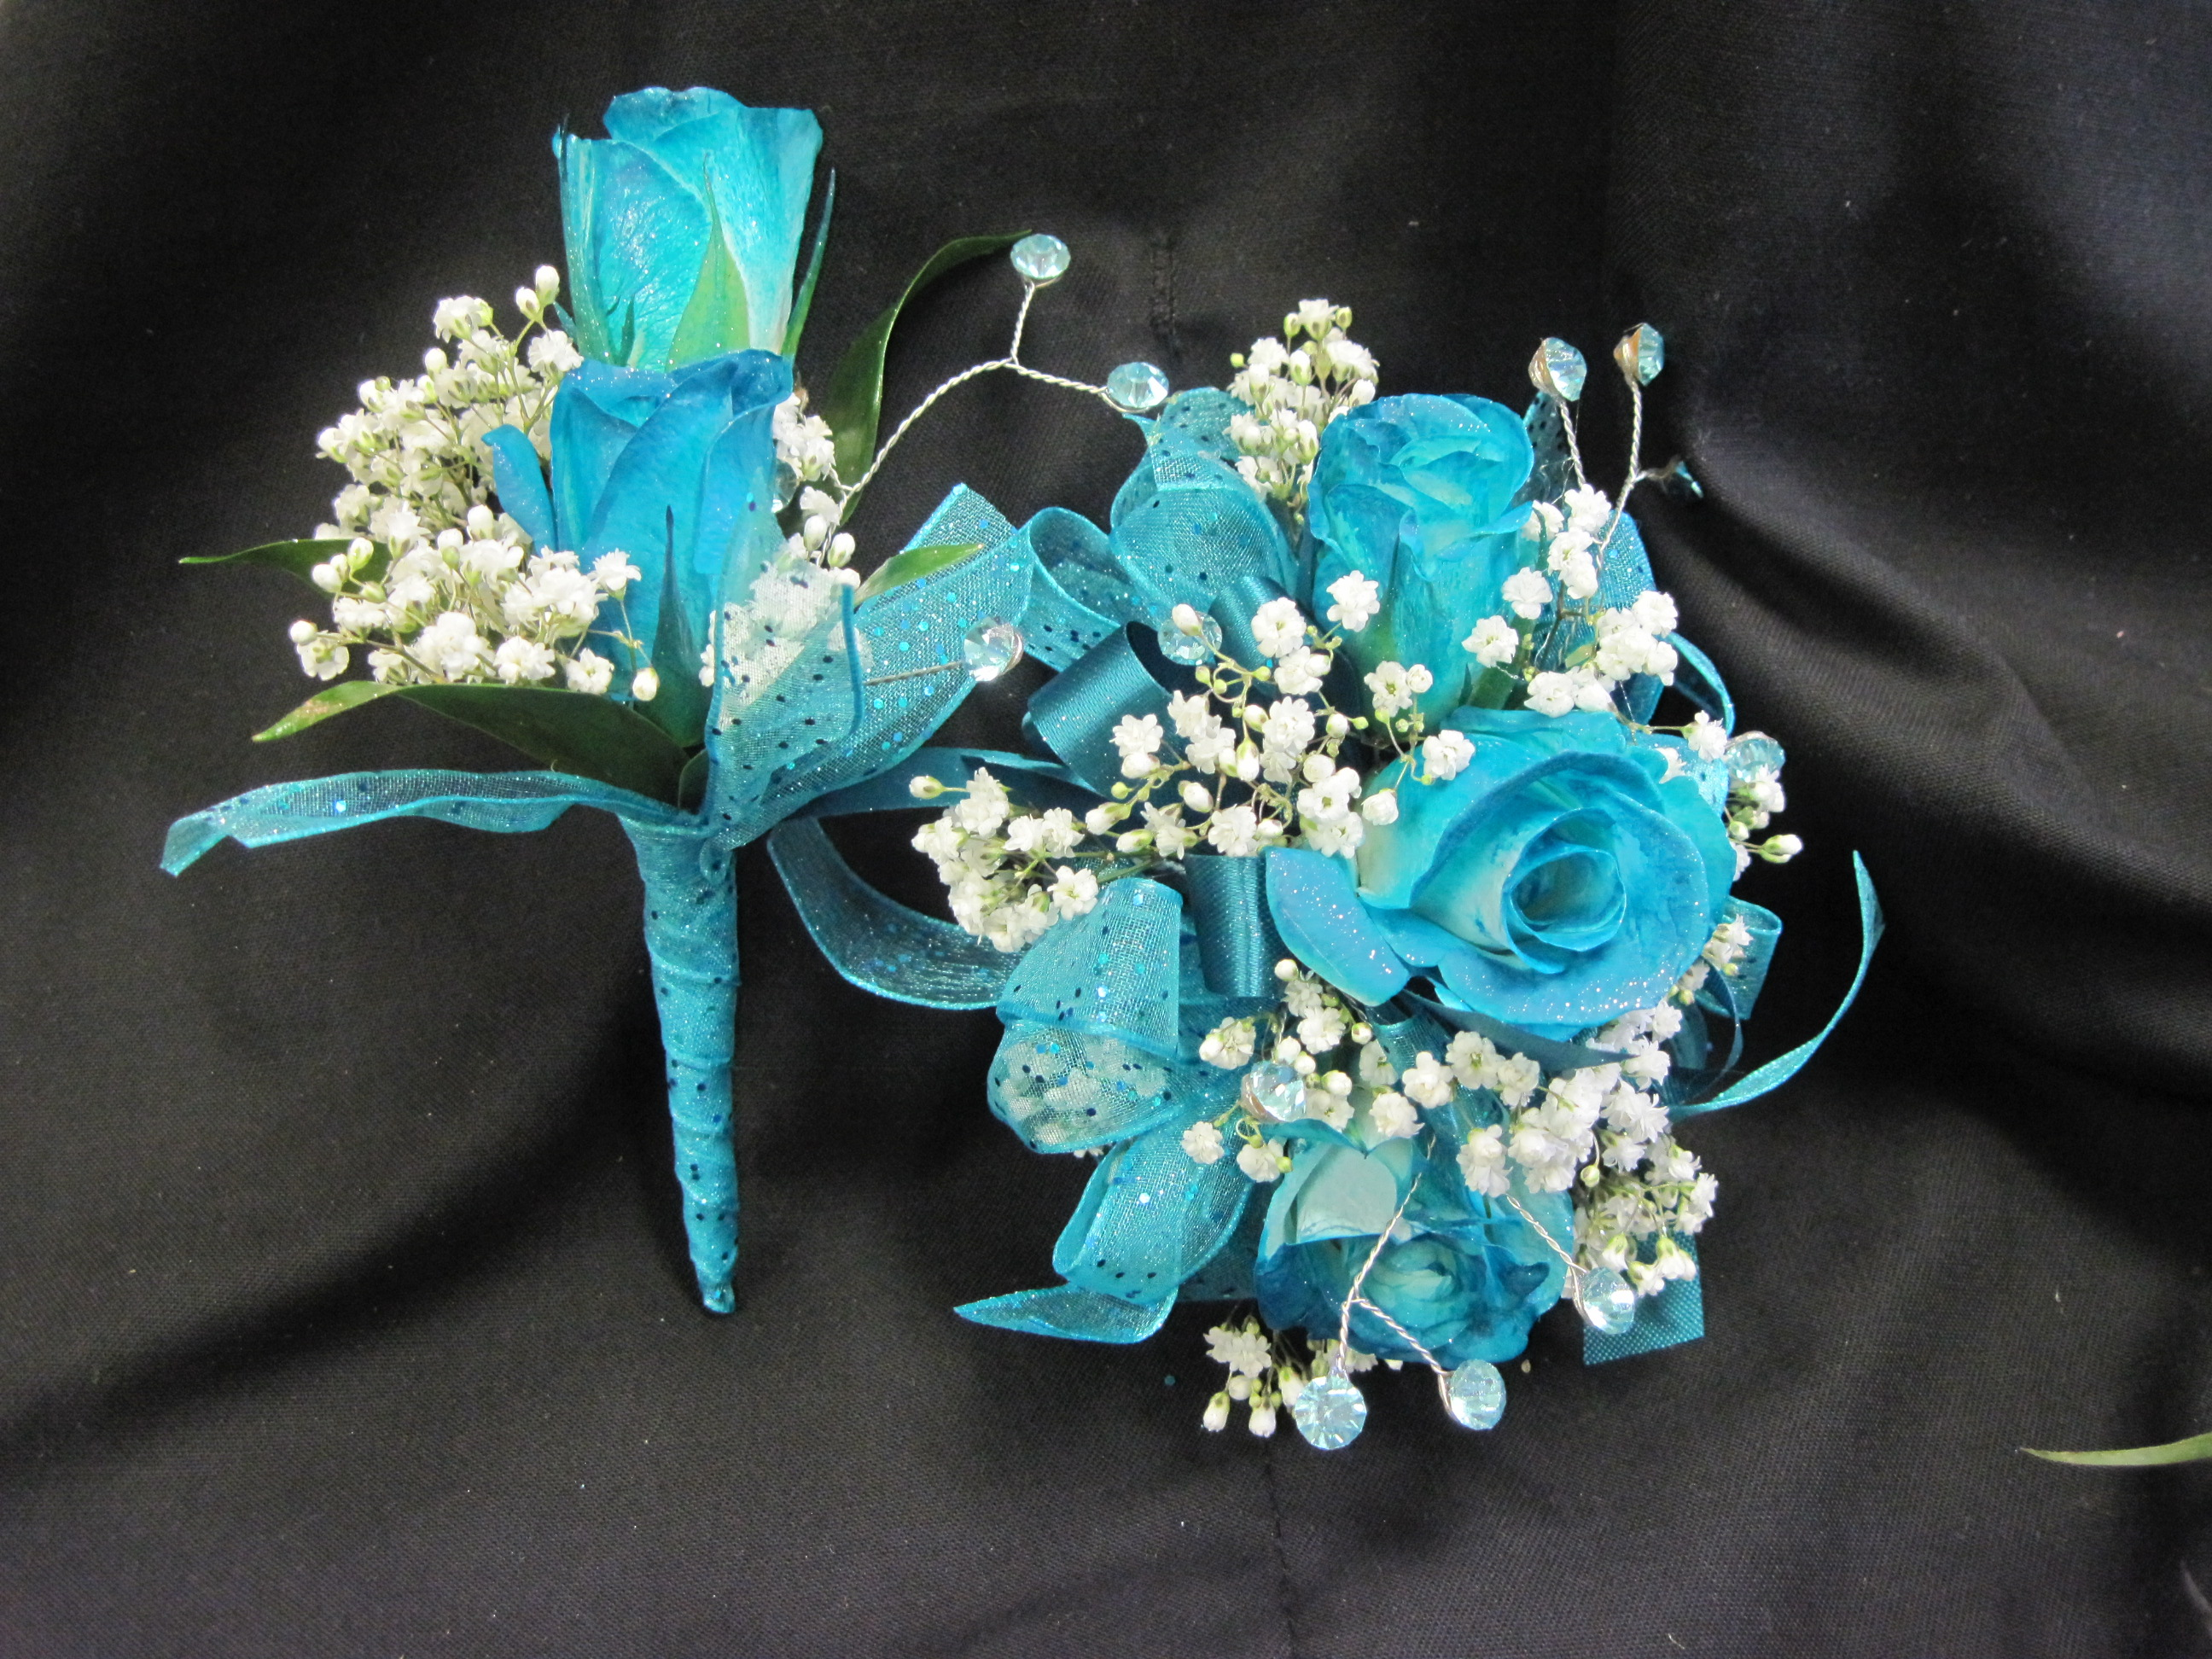 wrist corsages for prom 2014